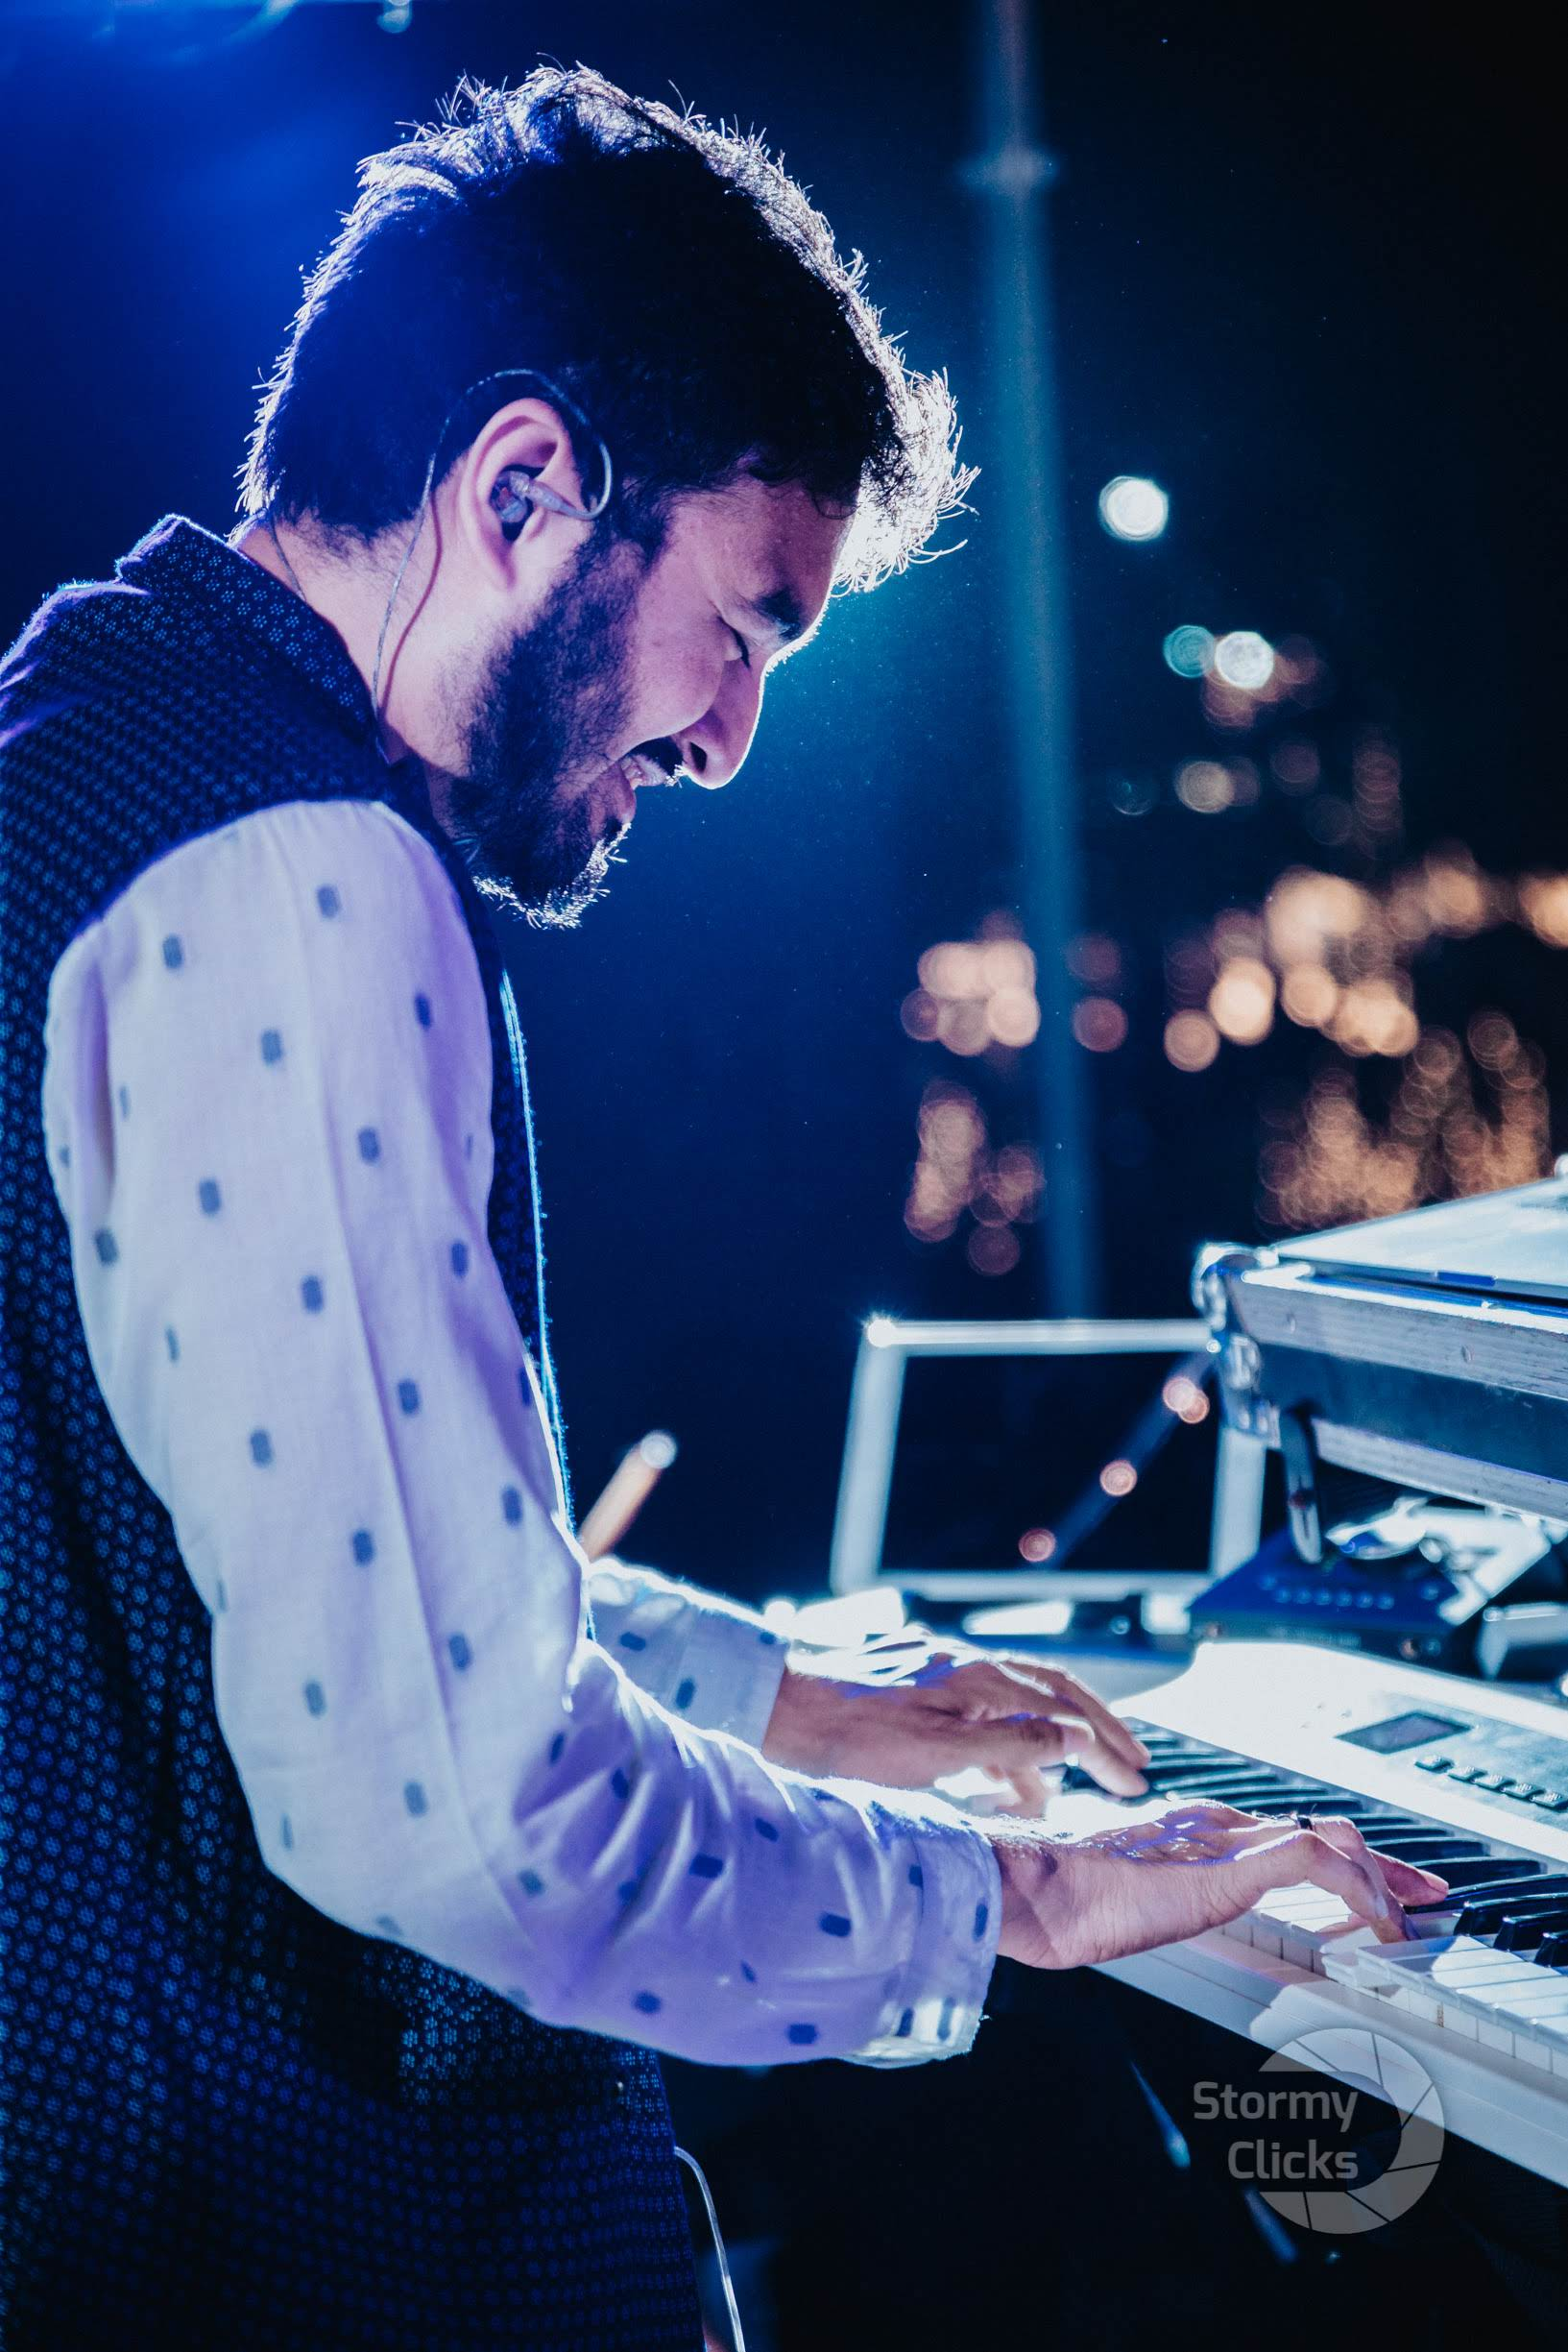 Girinandh is the Founder and producer of Oxygen Band and Aura Music Studios in Chennai.  He started playing keys since age 5.  He has composed jingles for corporate brands, music for web series, and worked on several Indian films.